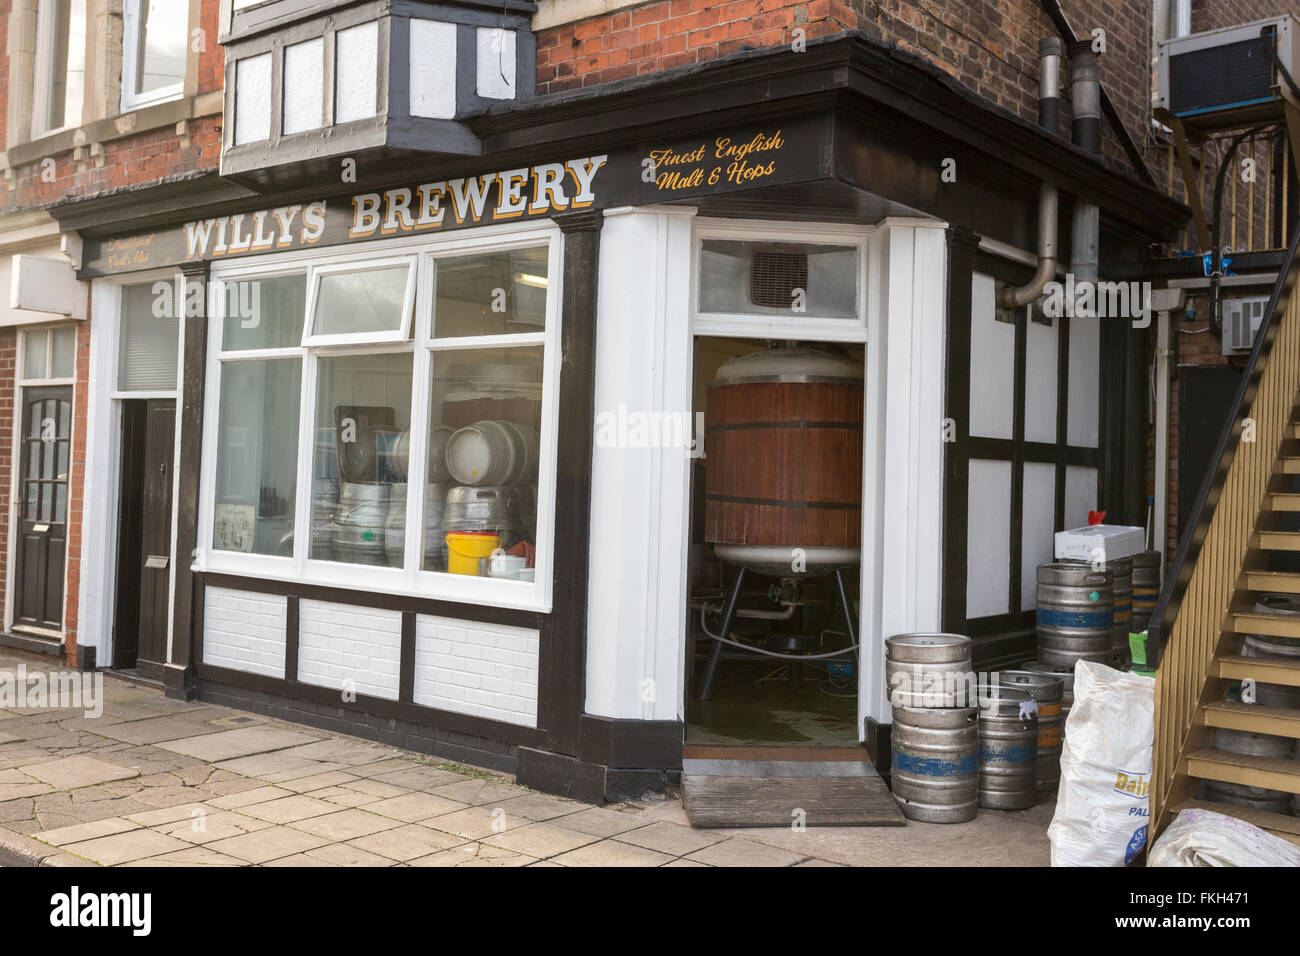 Willys Brewery Cleethorpes Lincolnshire - Stock Image